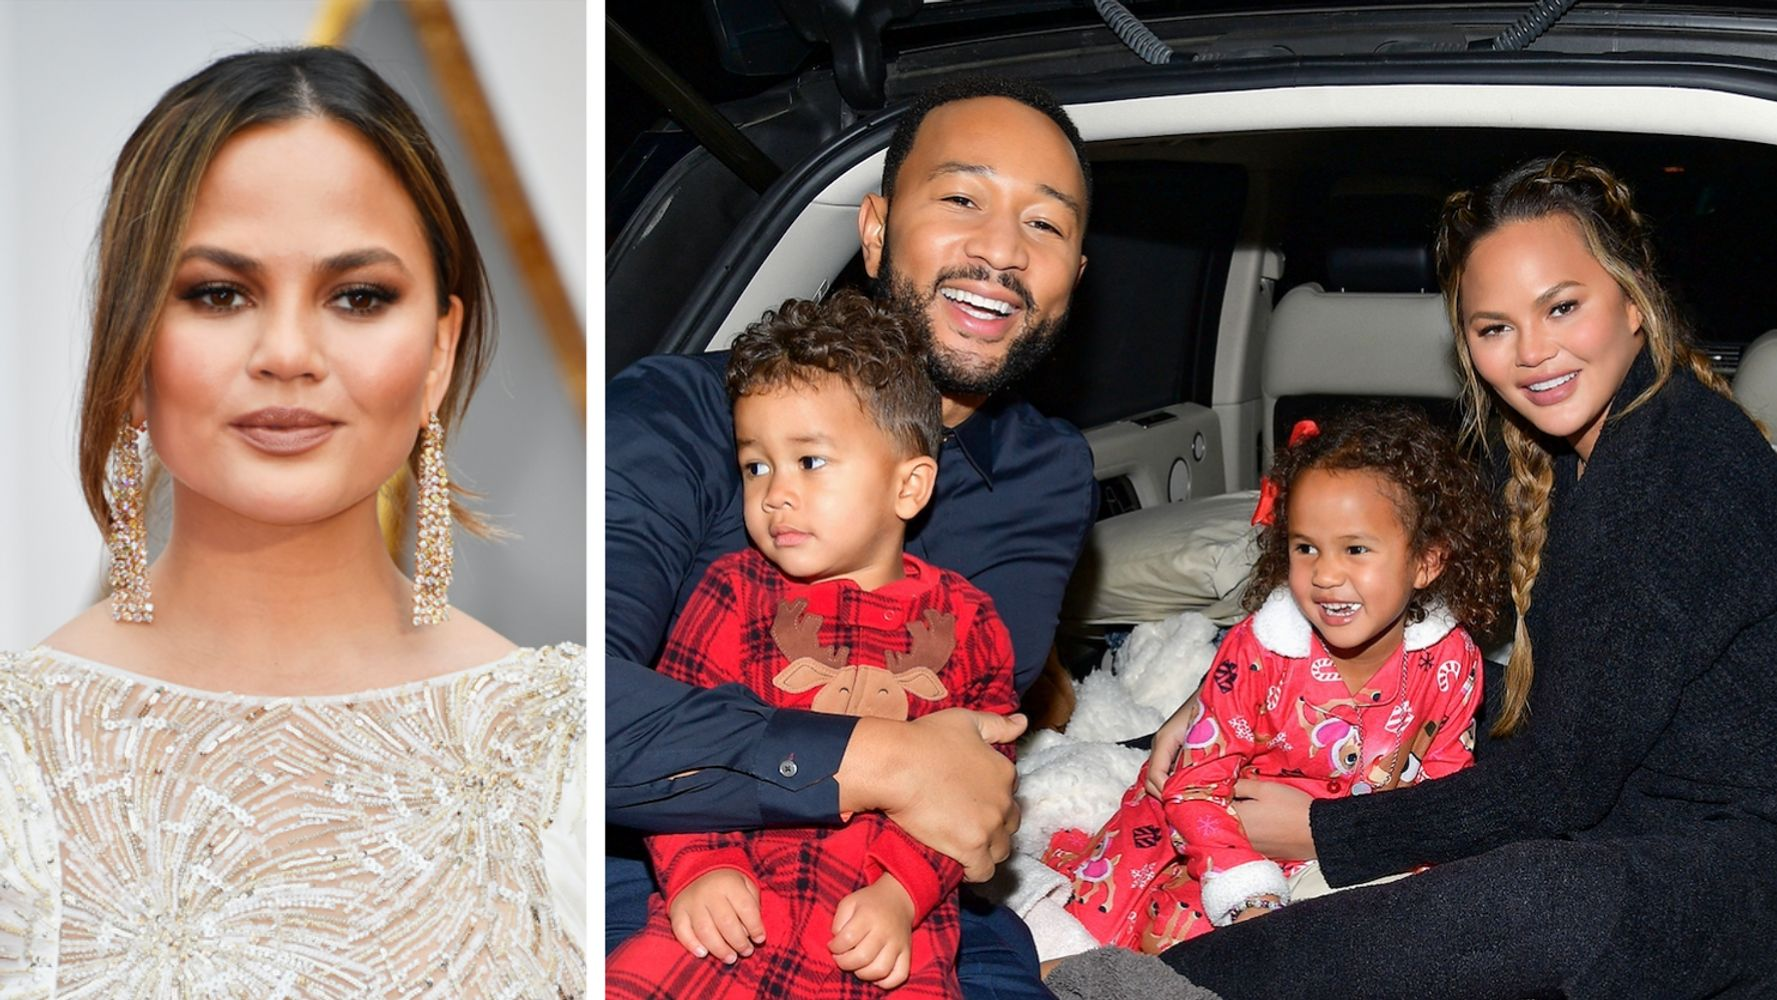 Chrissy Teigen's Family Photo Shoot Troubles Are Too Relatable For These Parents